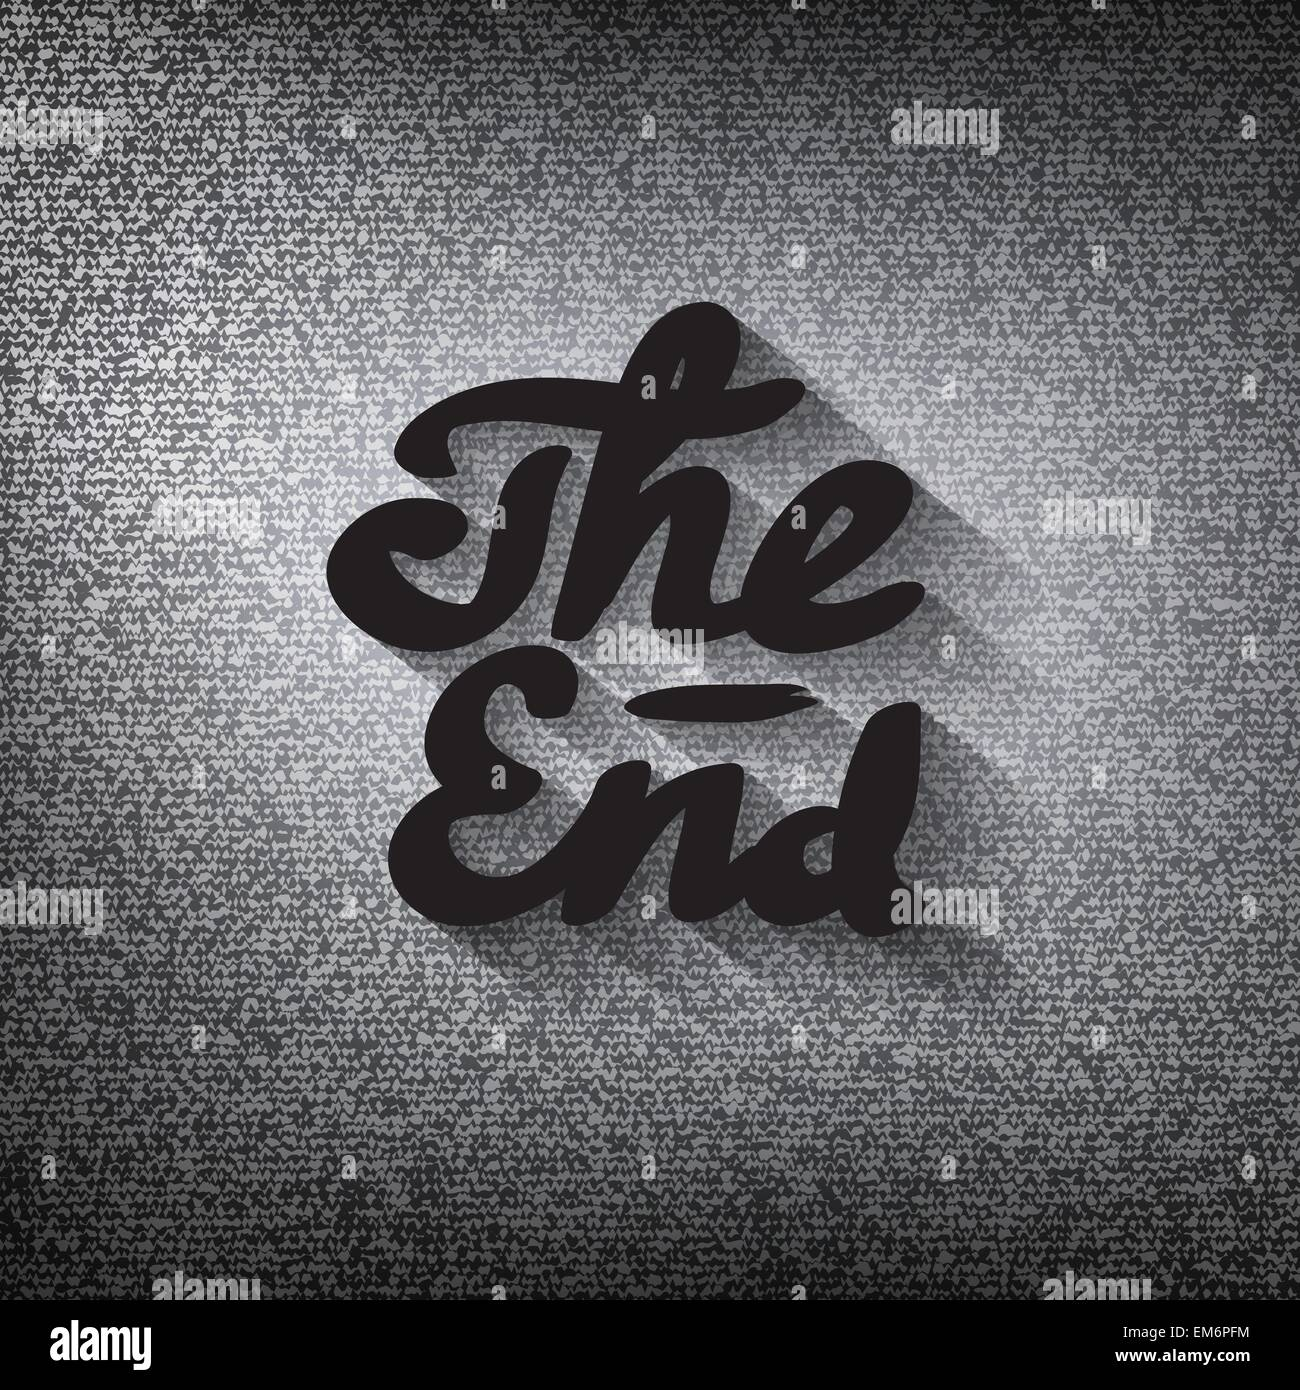 Old movie ending screen, stylized noir 'The End' lettering - Stock Vector